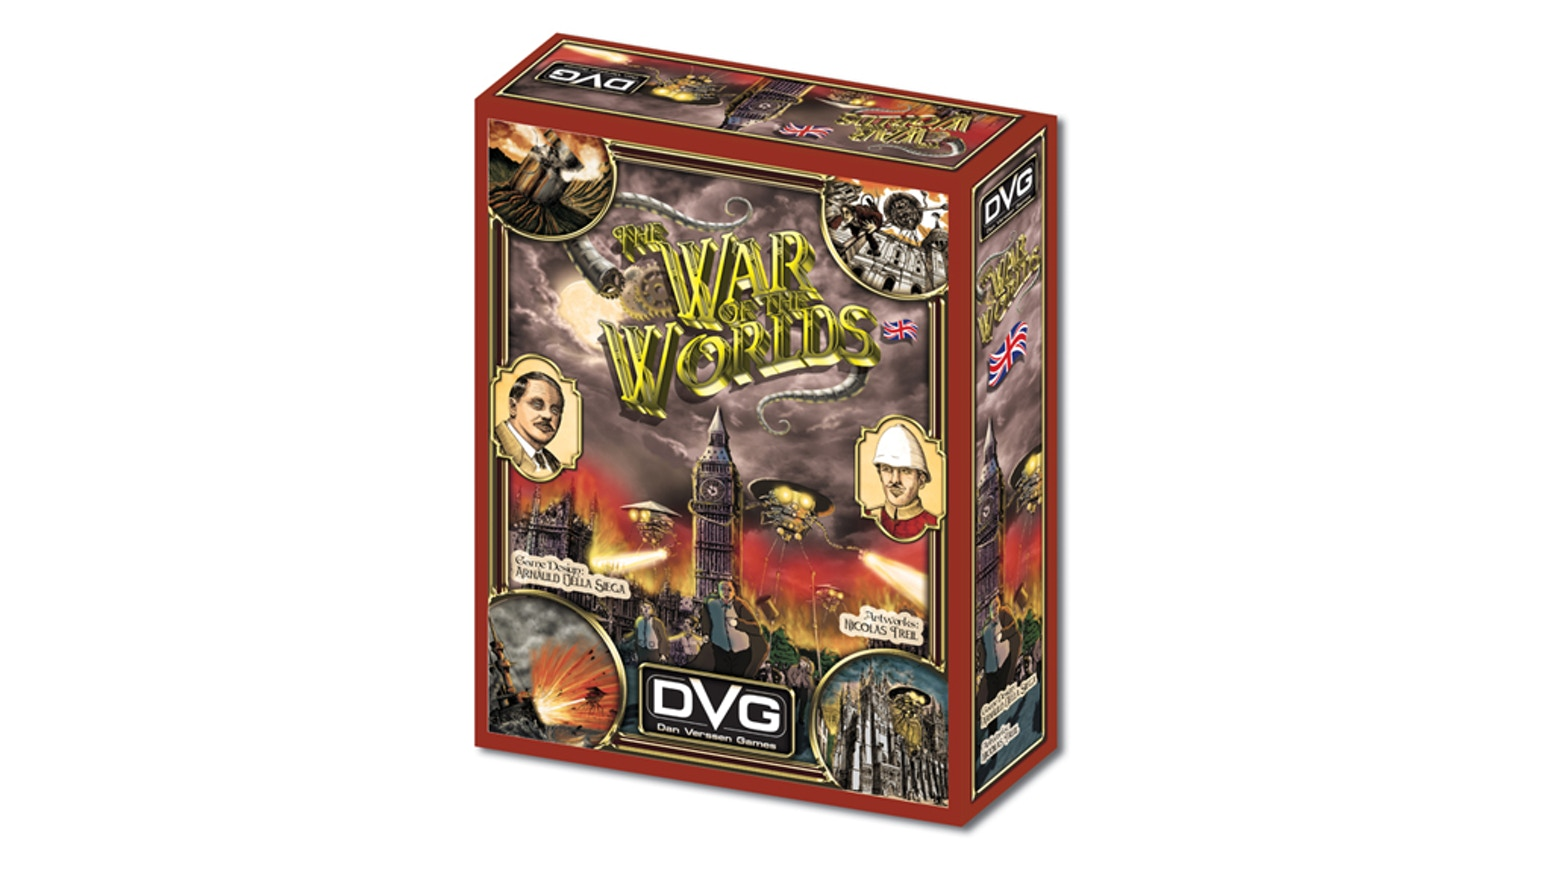 The War of the Worlds - Board Game by Dan Verssen Games